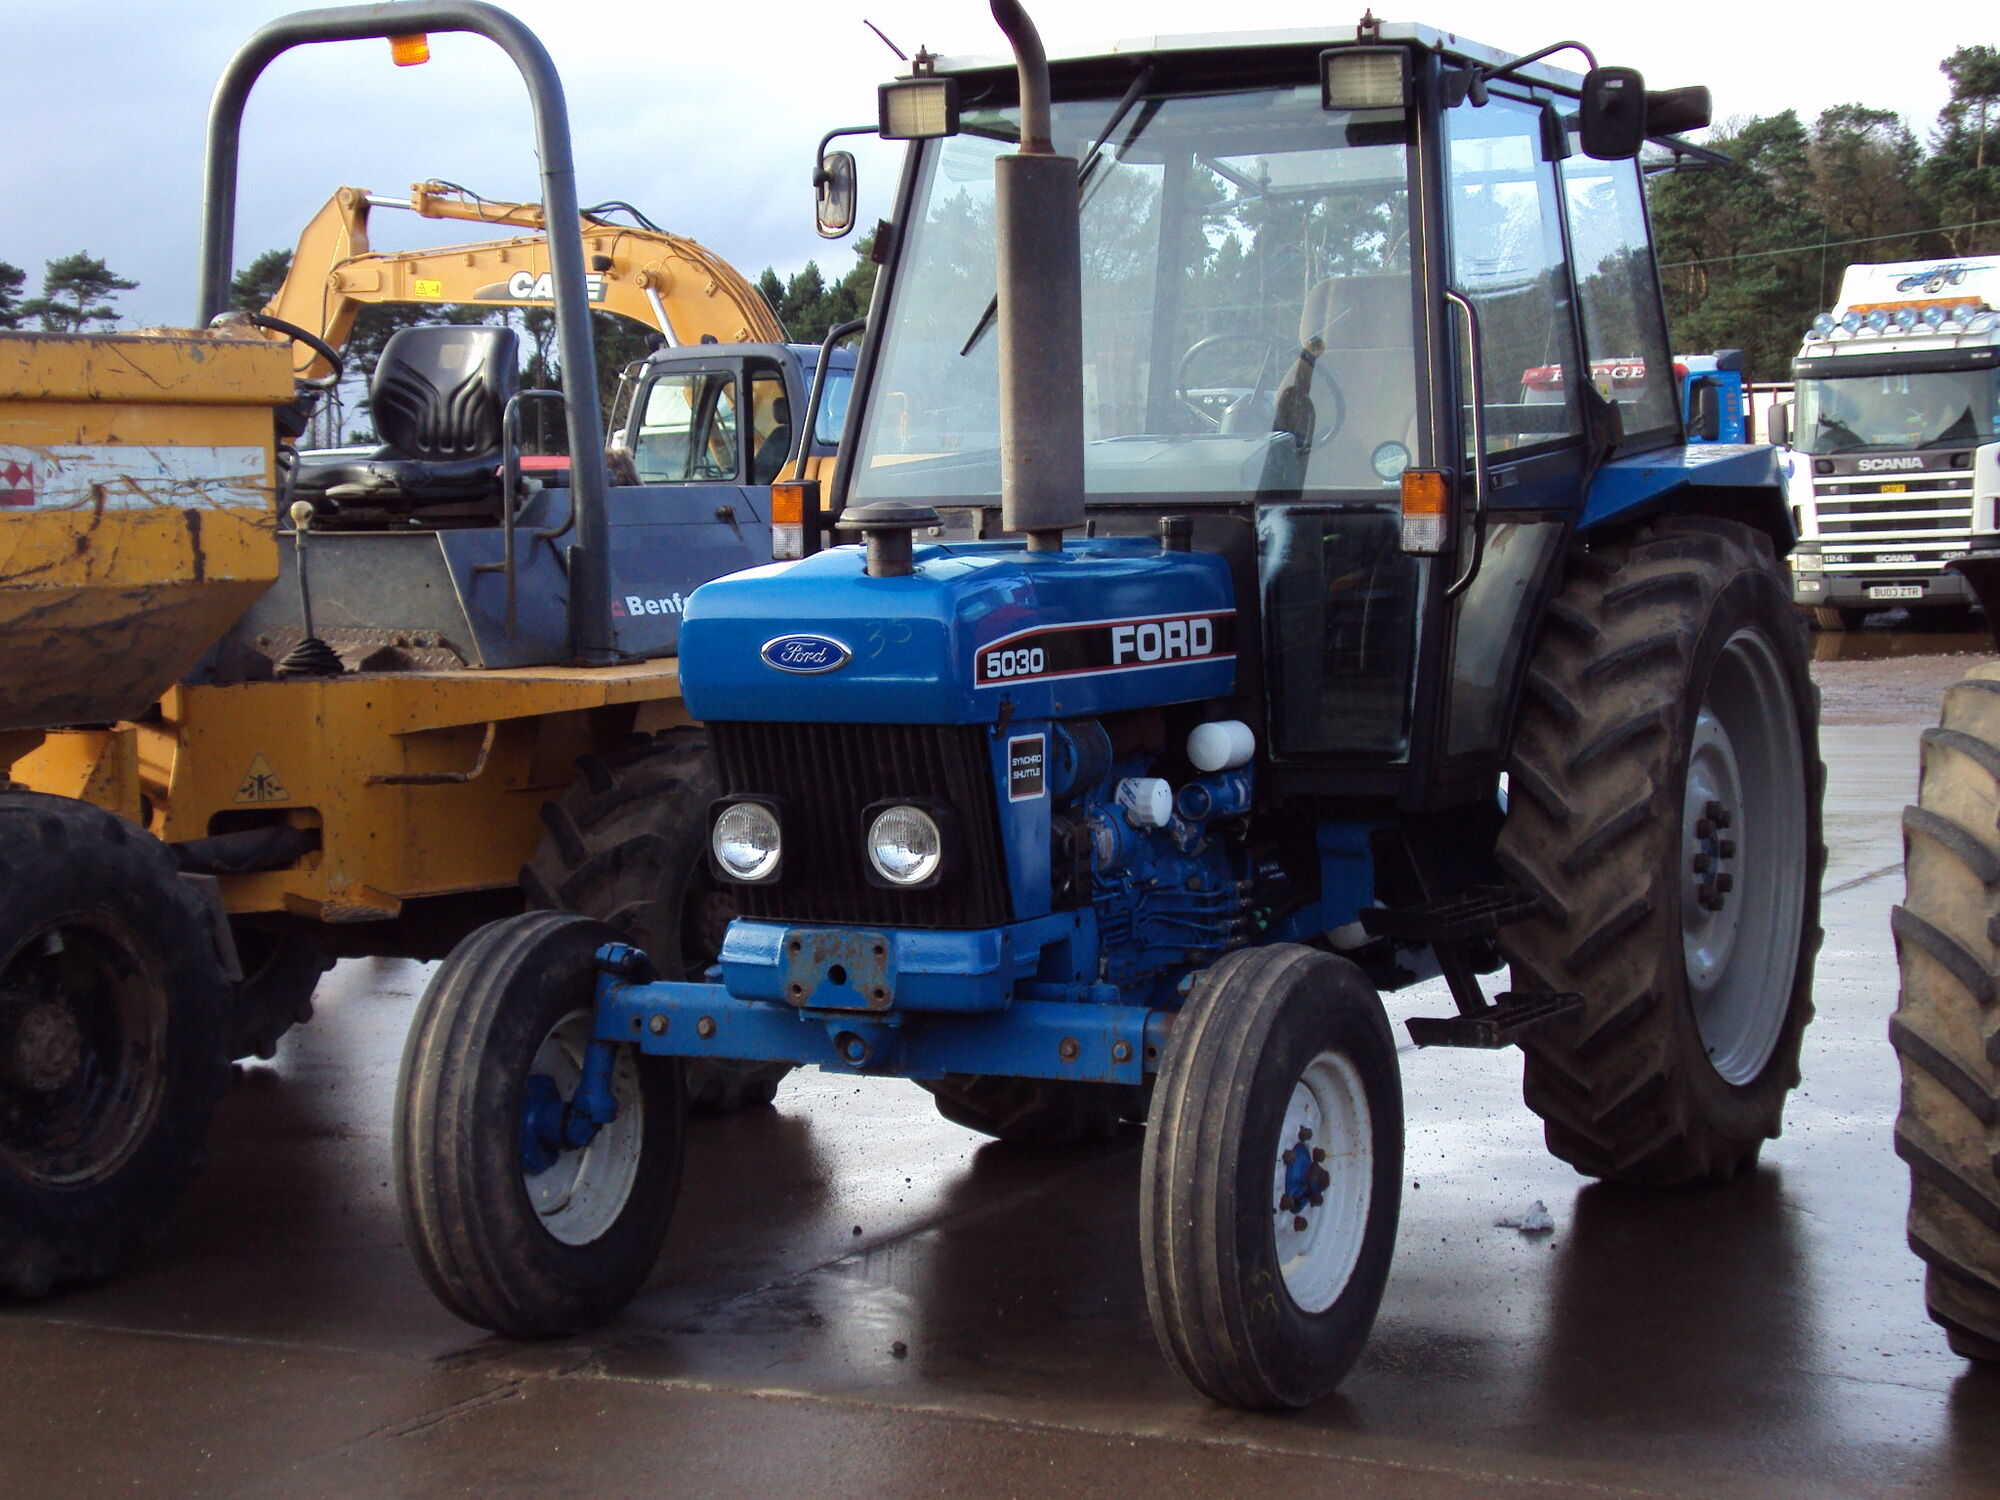 Ford 5030 Tractor Construction Plant Wiki Fandom Powered By Wikia 8n Cooling System